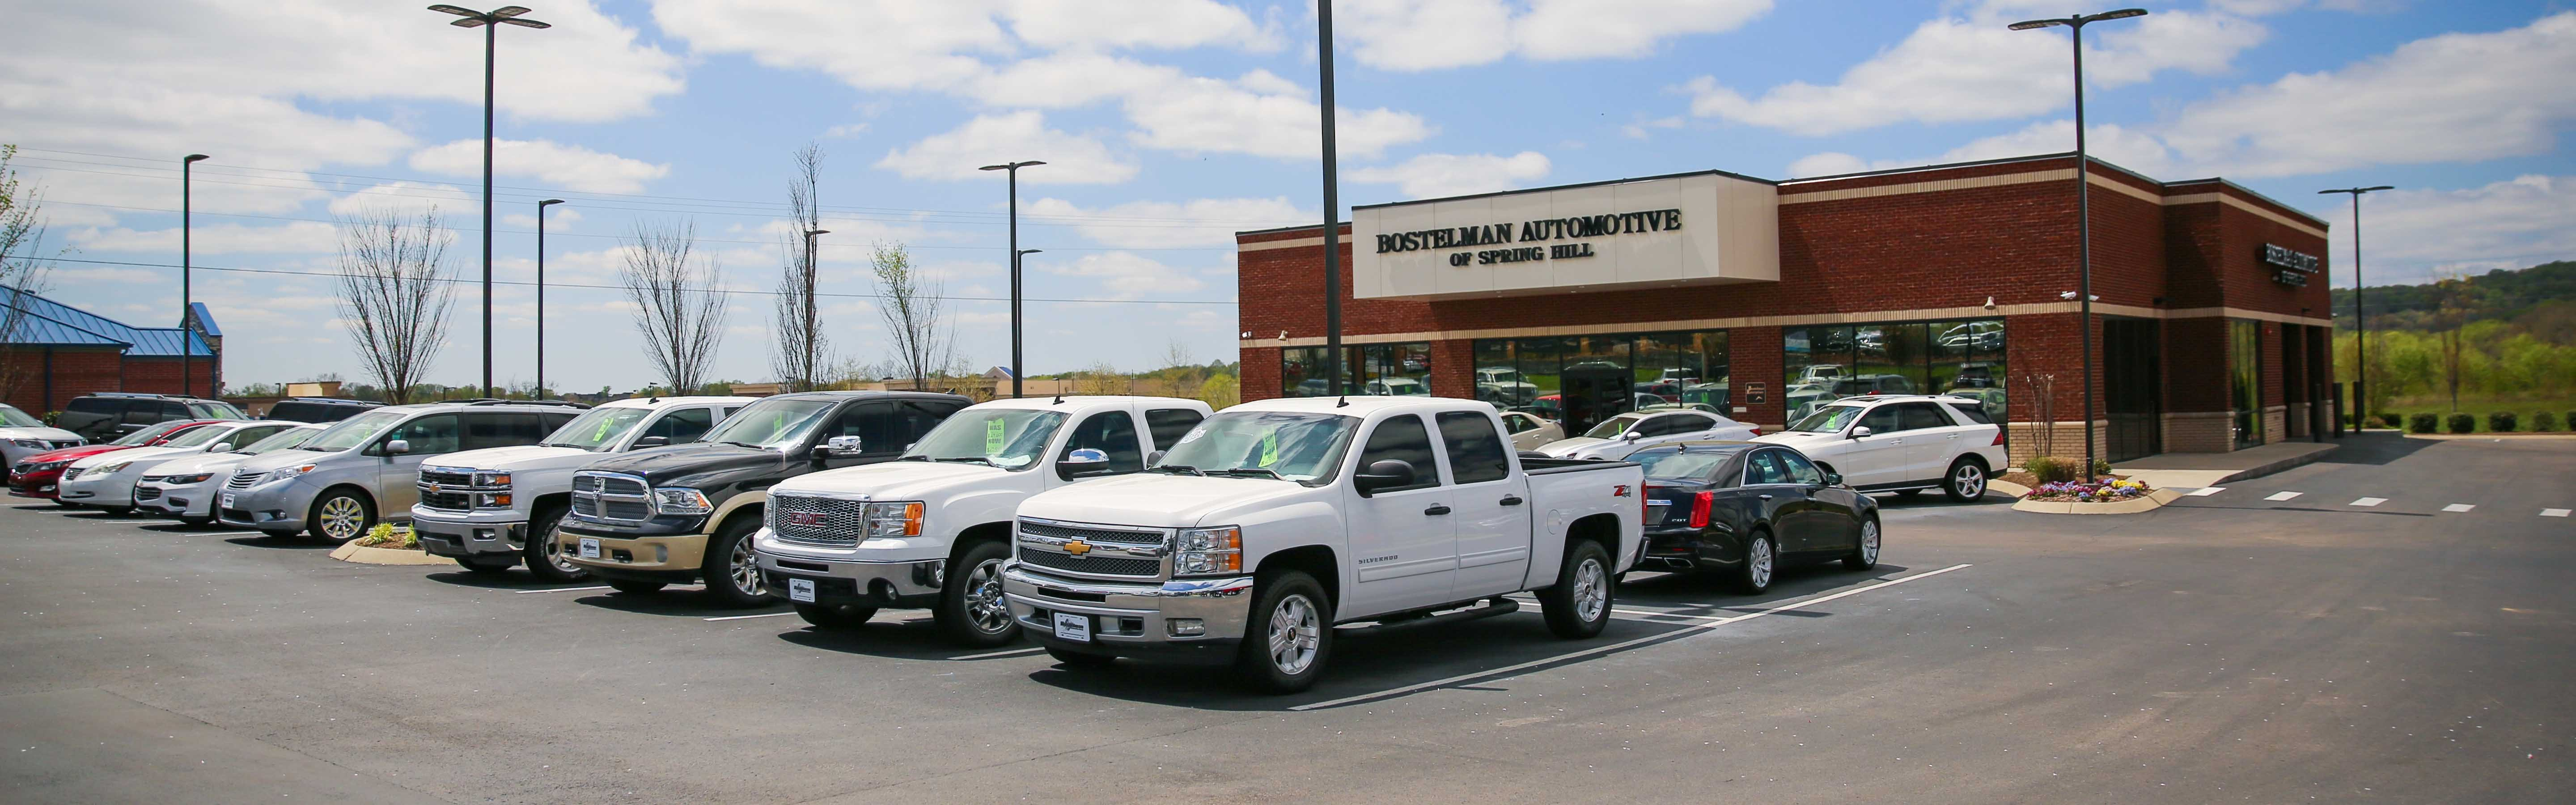 spring hill pre owned dealer in spring hill tn used pre owned dealership franklin nashville columbia brentwoodtn